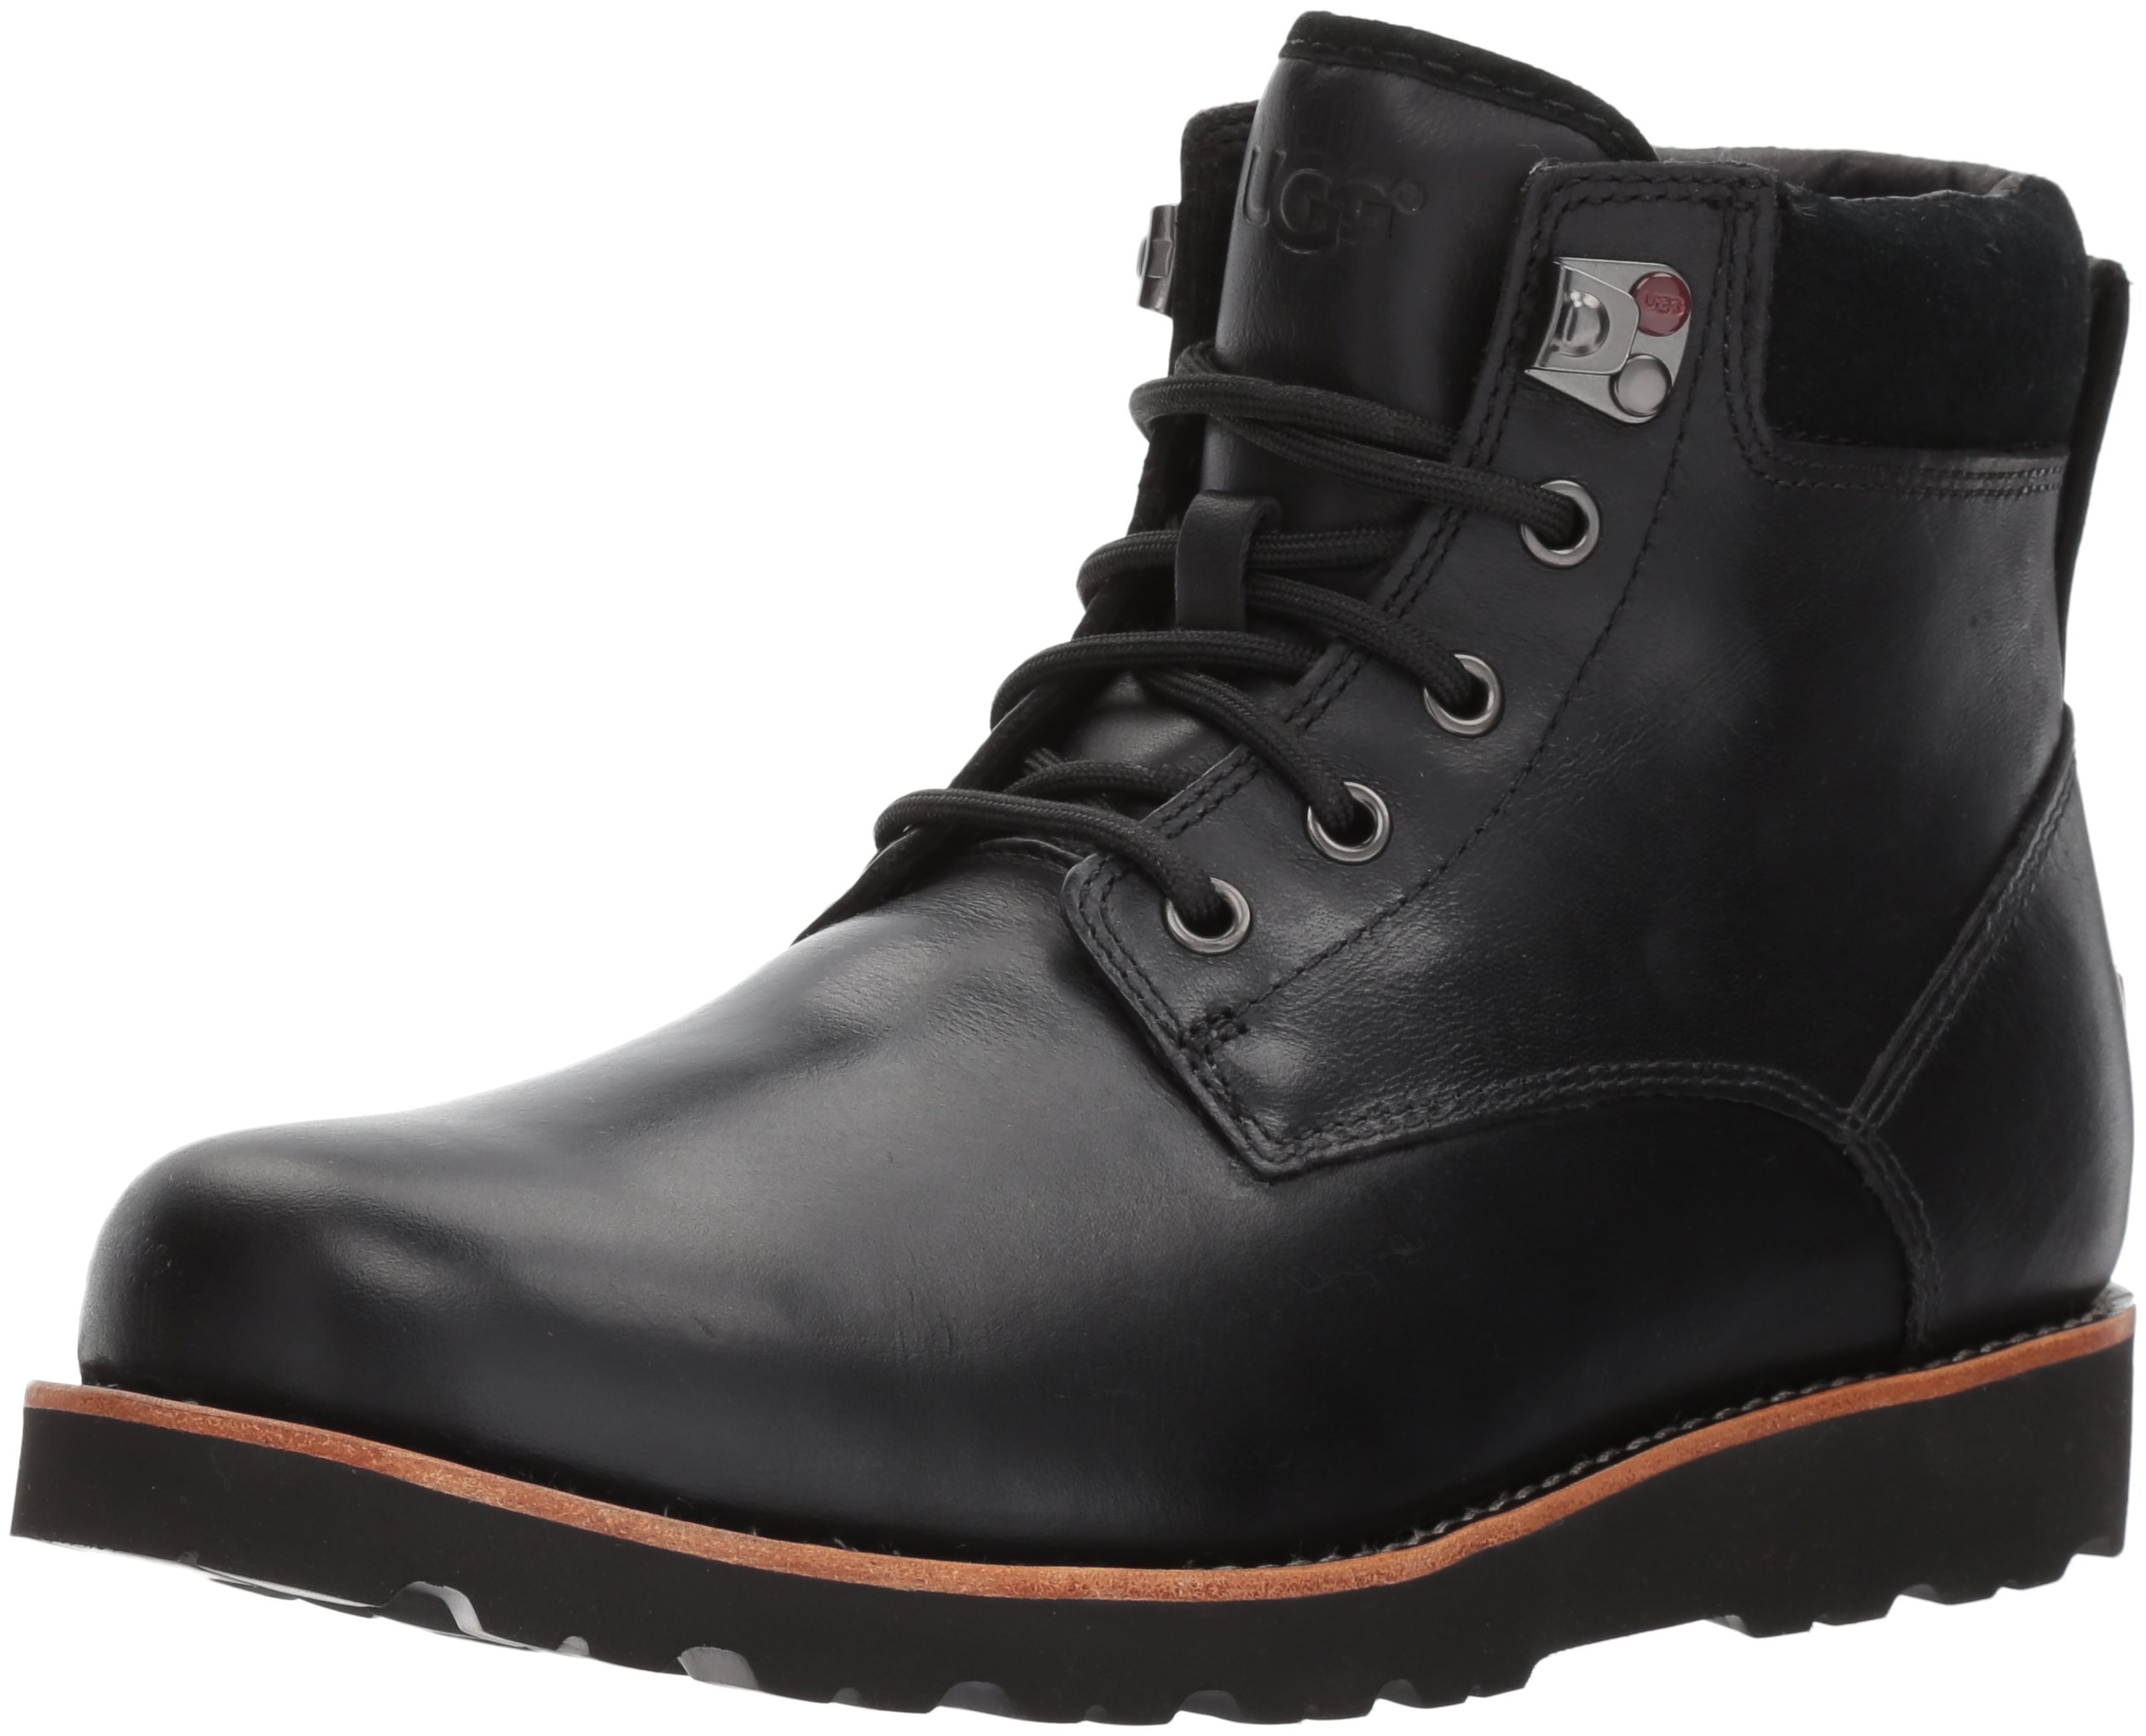 Ugg Men's Seton Tl Winter Boot, Black, 13 M US